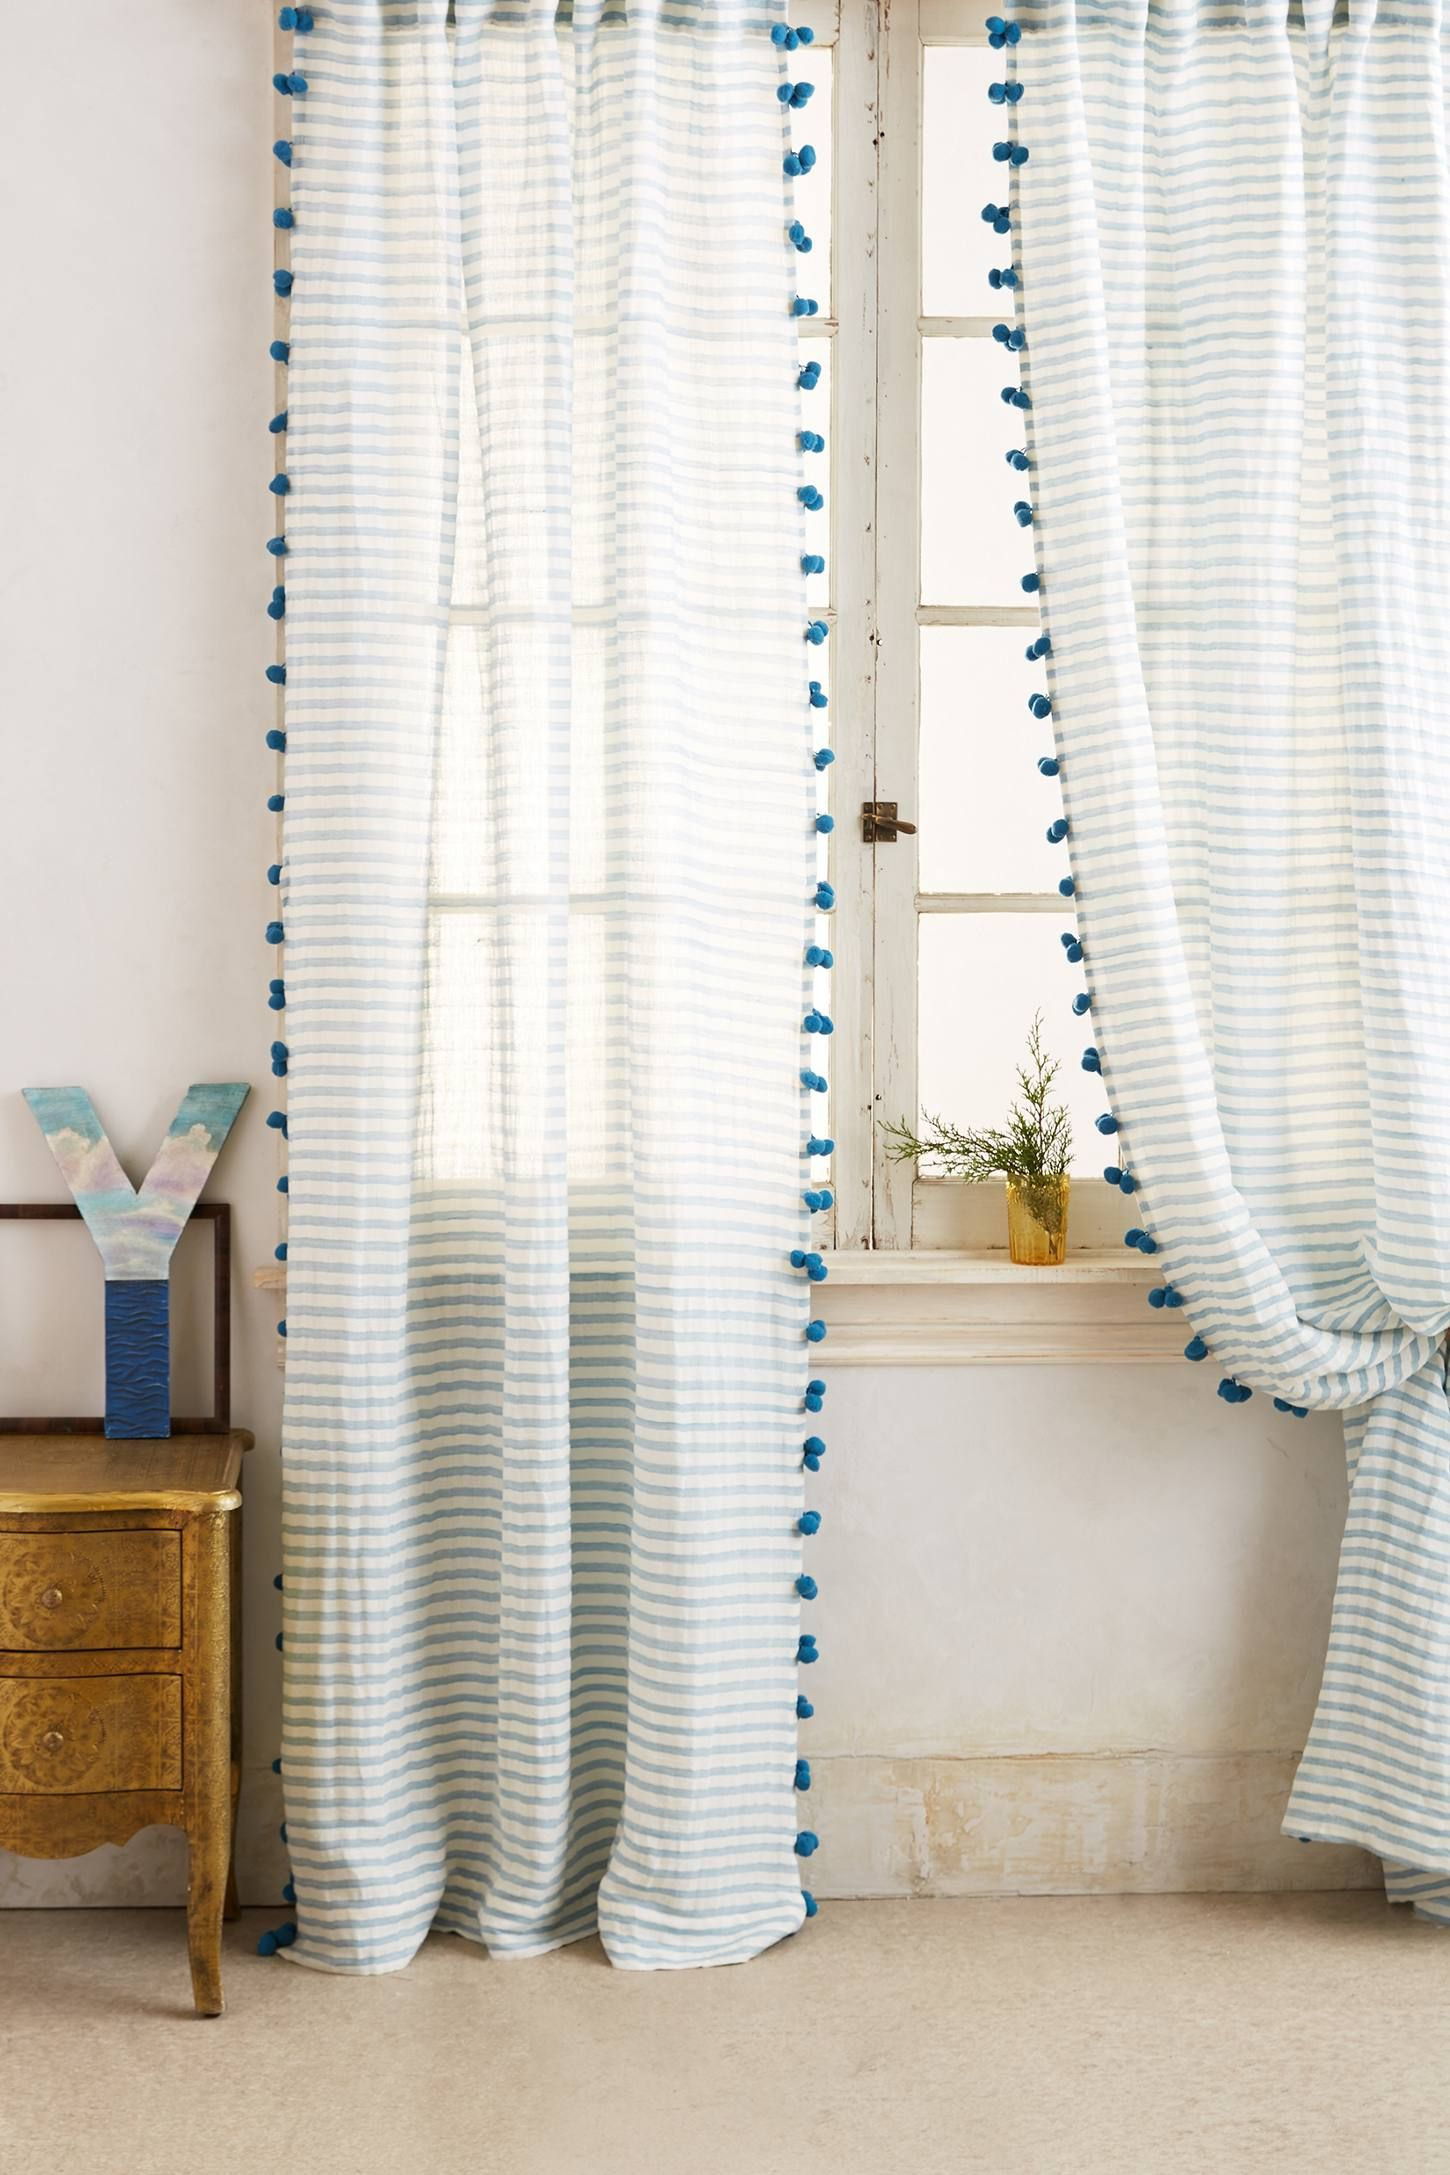 Shop The Pom Tassel Curtain And More Anthropologie At Anthropologie Today.  Read Customer Reviews,